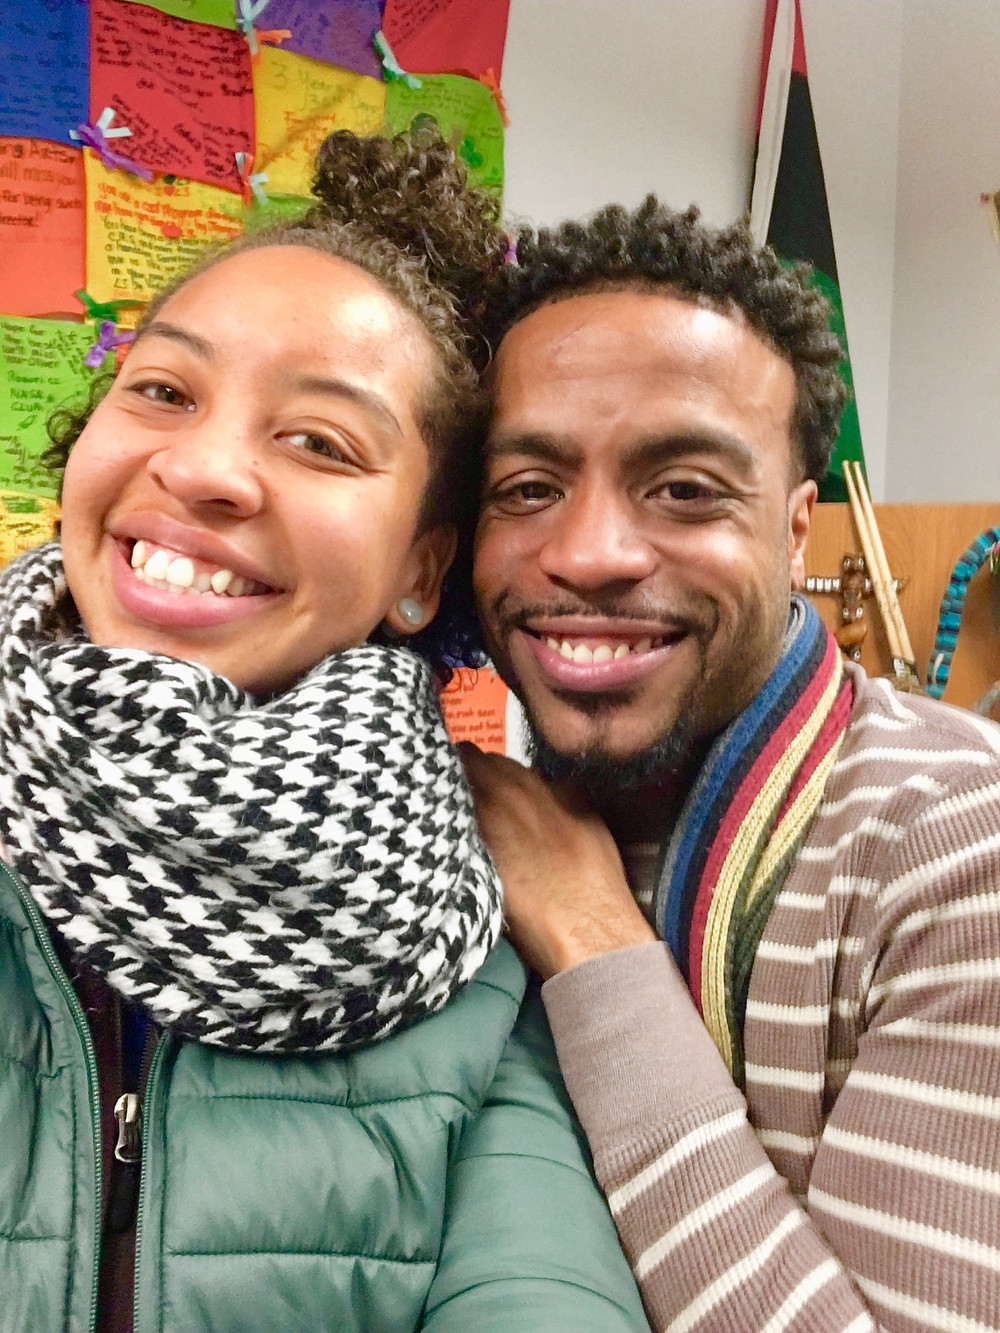 Two black people with short curly hair smile directly at the camera. Vic is wearing a green jacket and a black and white checkered scarf. Jadrien is wearing a brown and white striped long sleeve thermal shirt, and multicolored scarf. He is leaning against Vic.